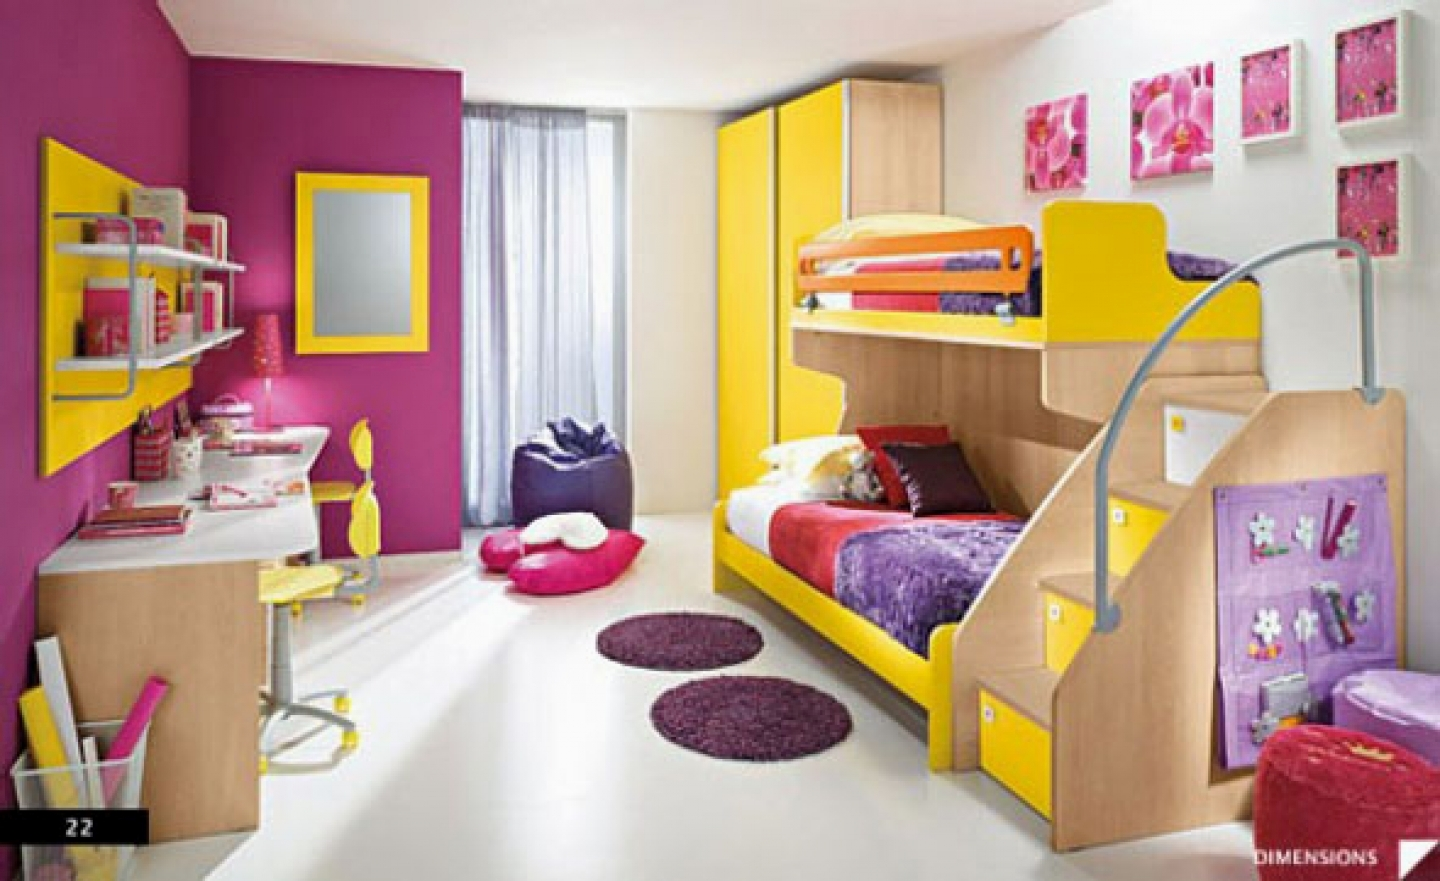 ikea twin bedroom furniture photo - 5